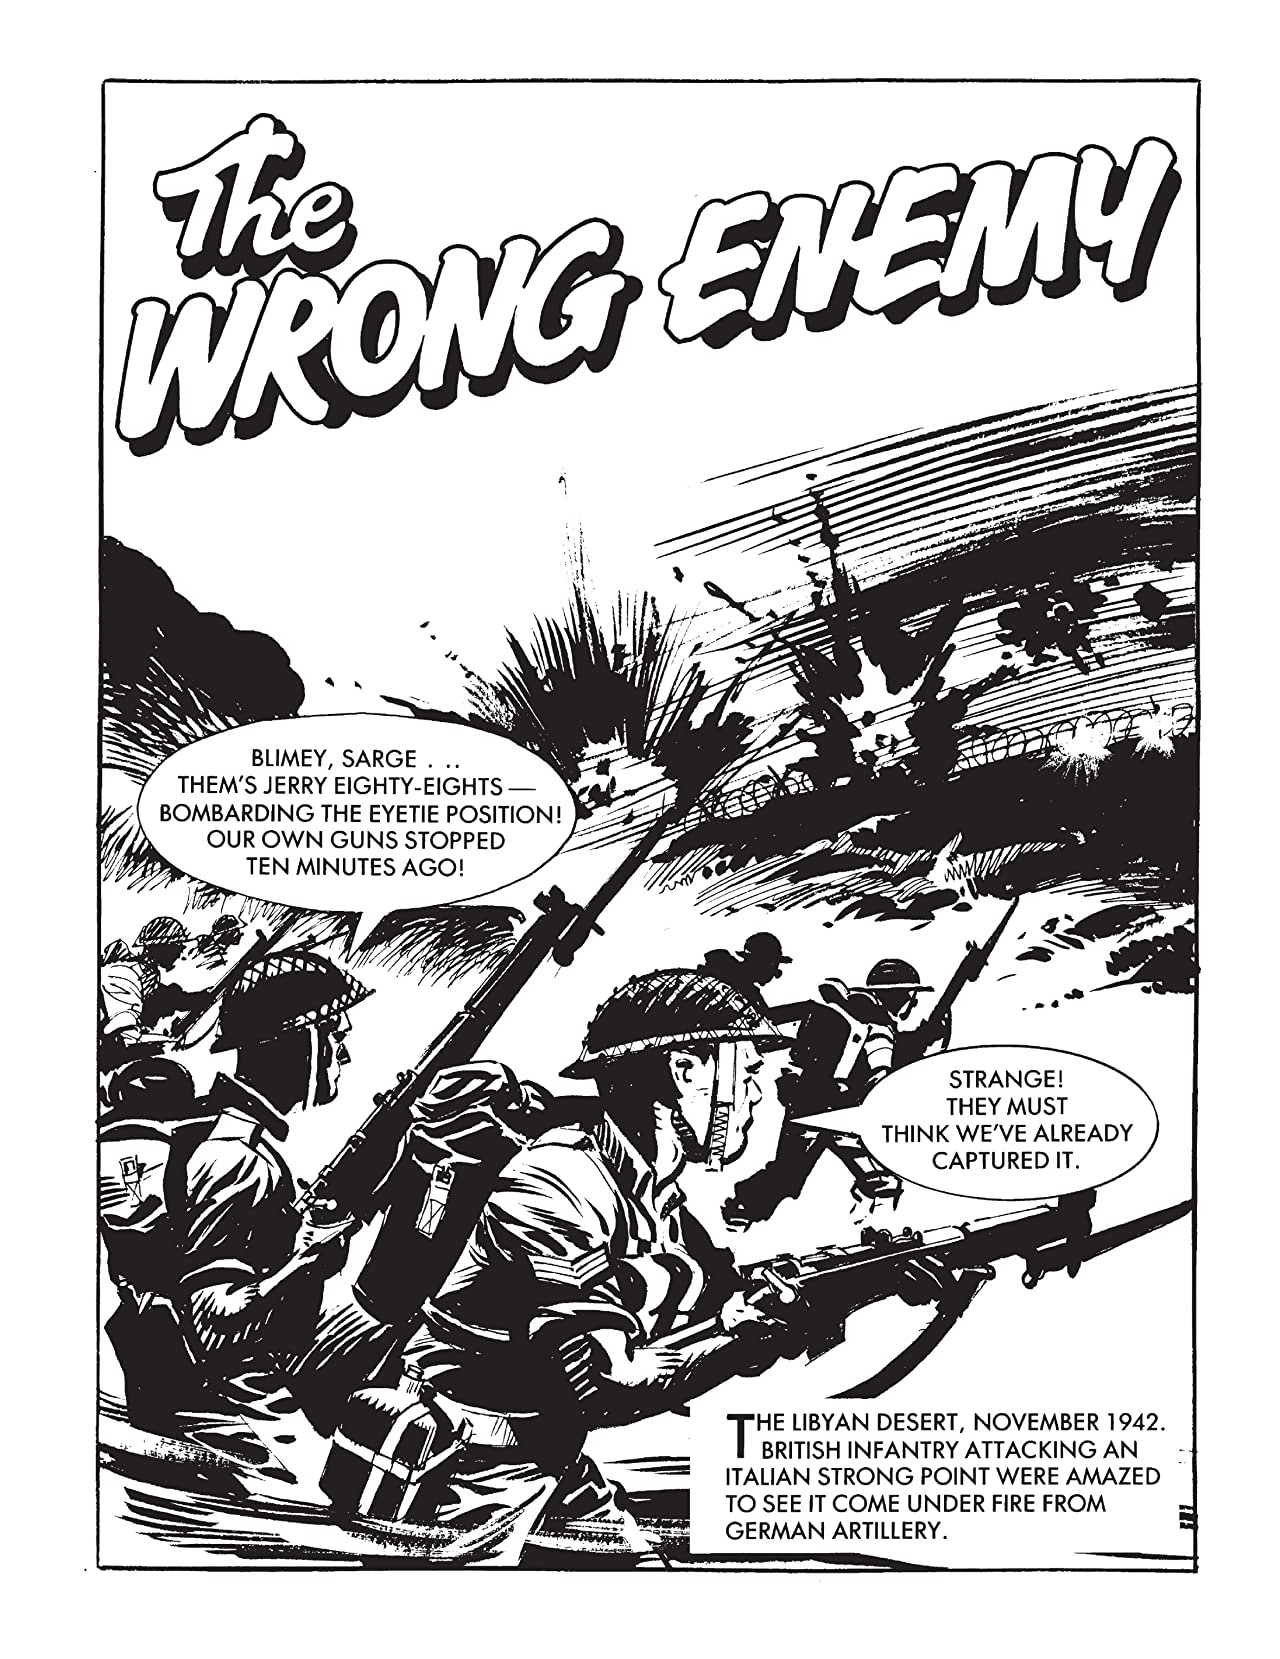 Commando #4886: The Wrong Enemy